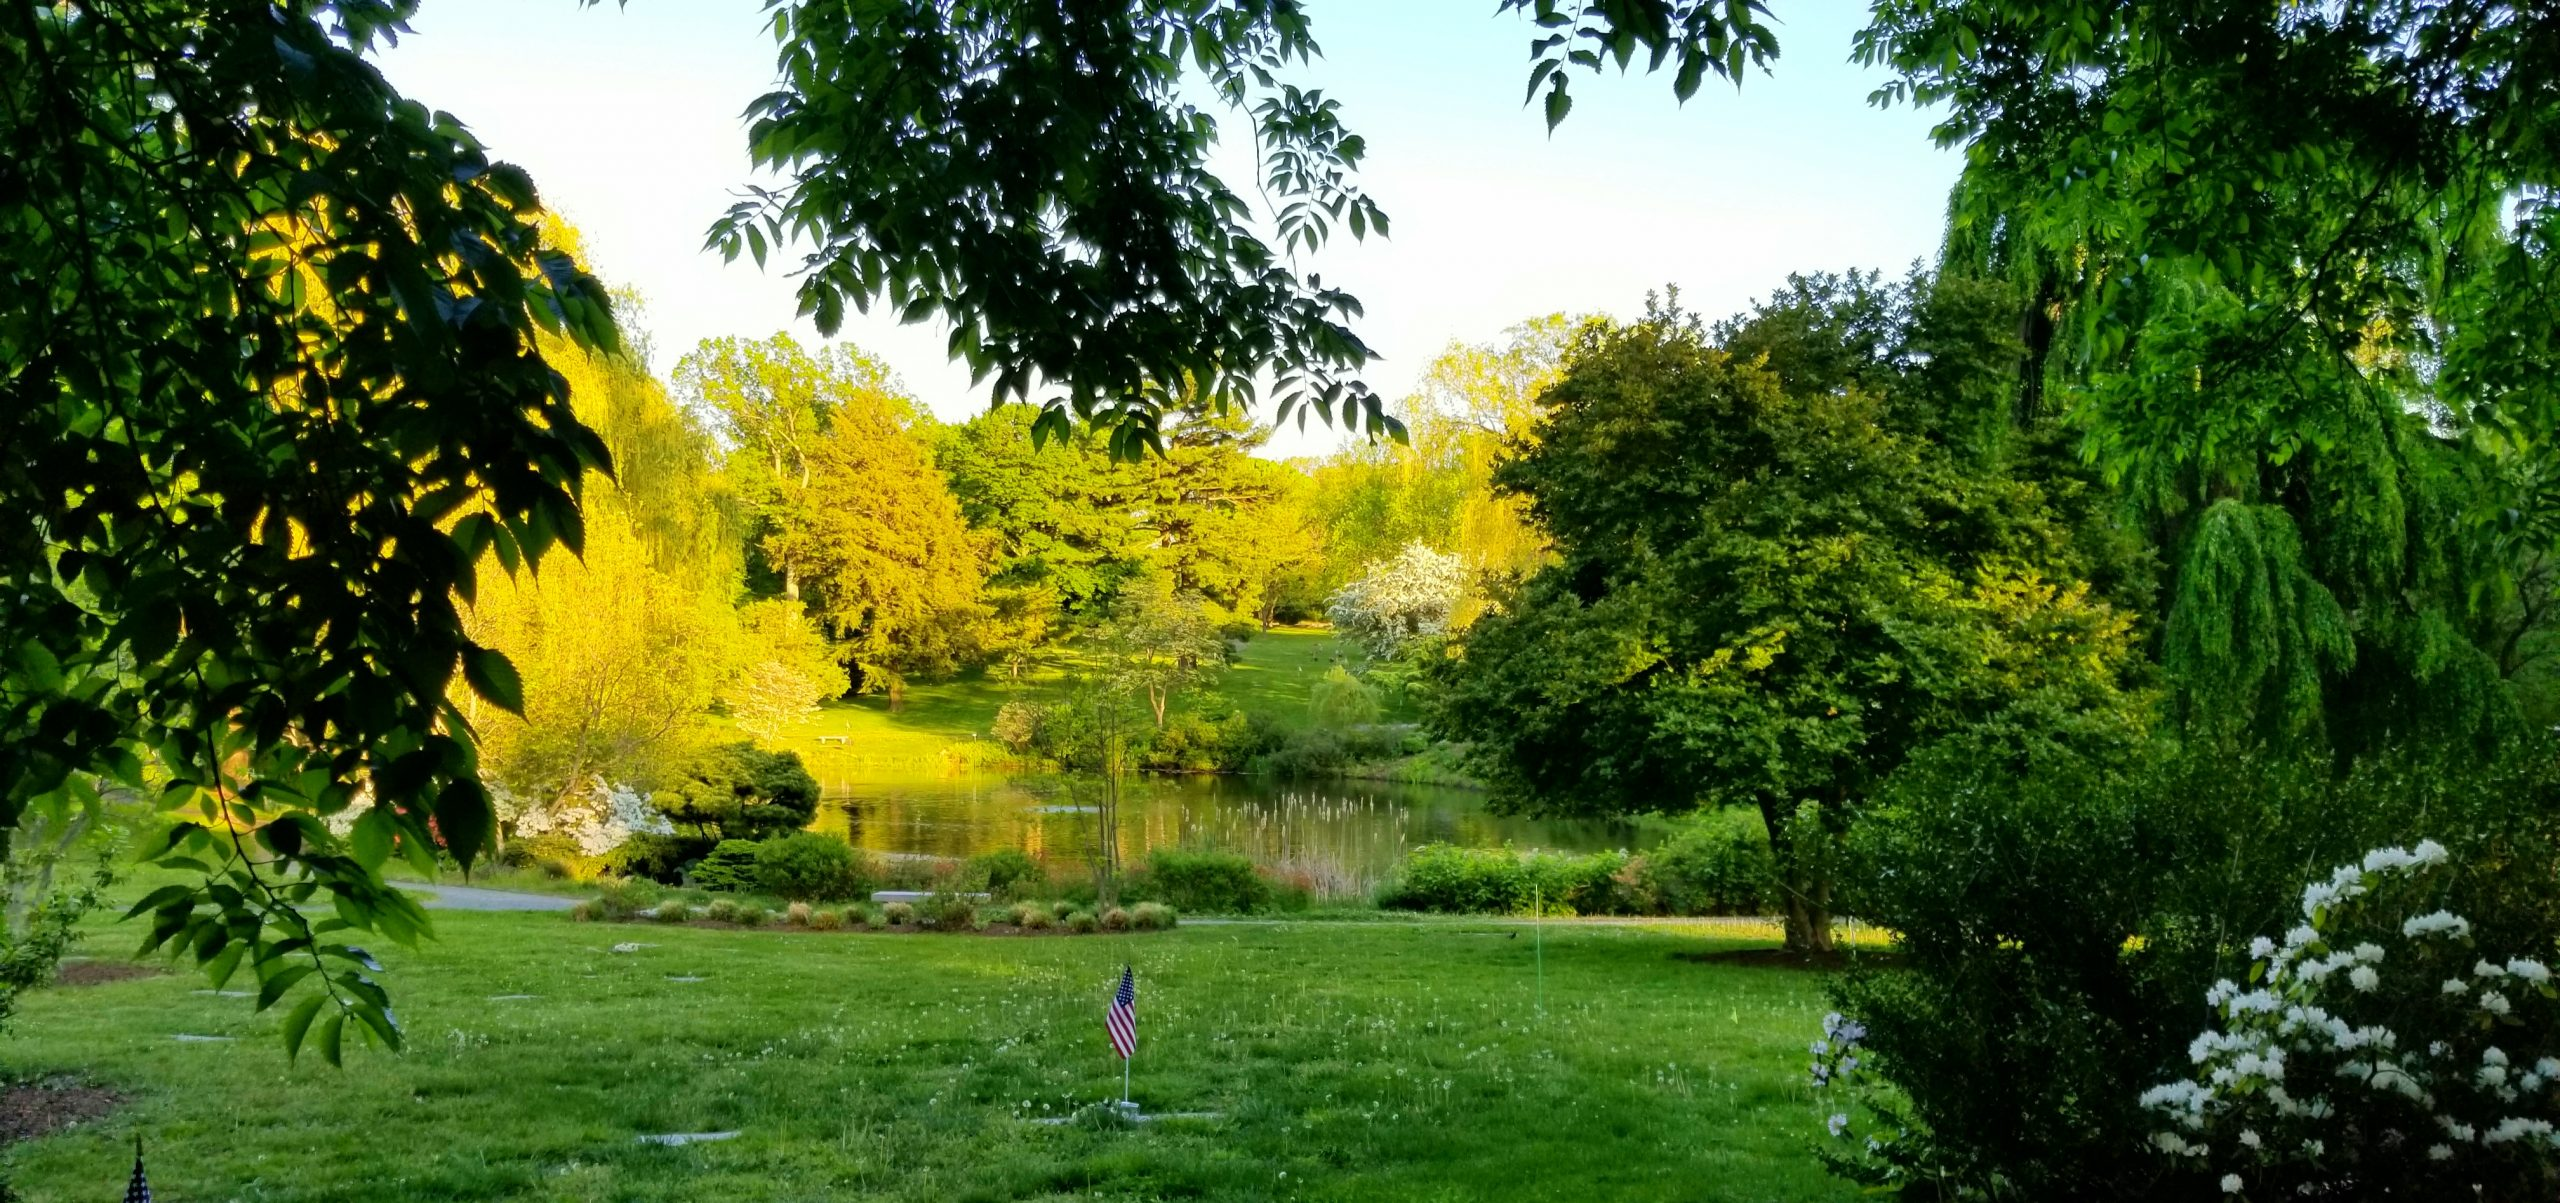 A grassy lawn sloping down towards a pond. Monuments are flush with the grass to preserve the view of the pond.